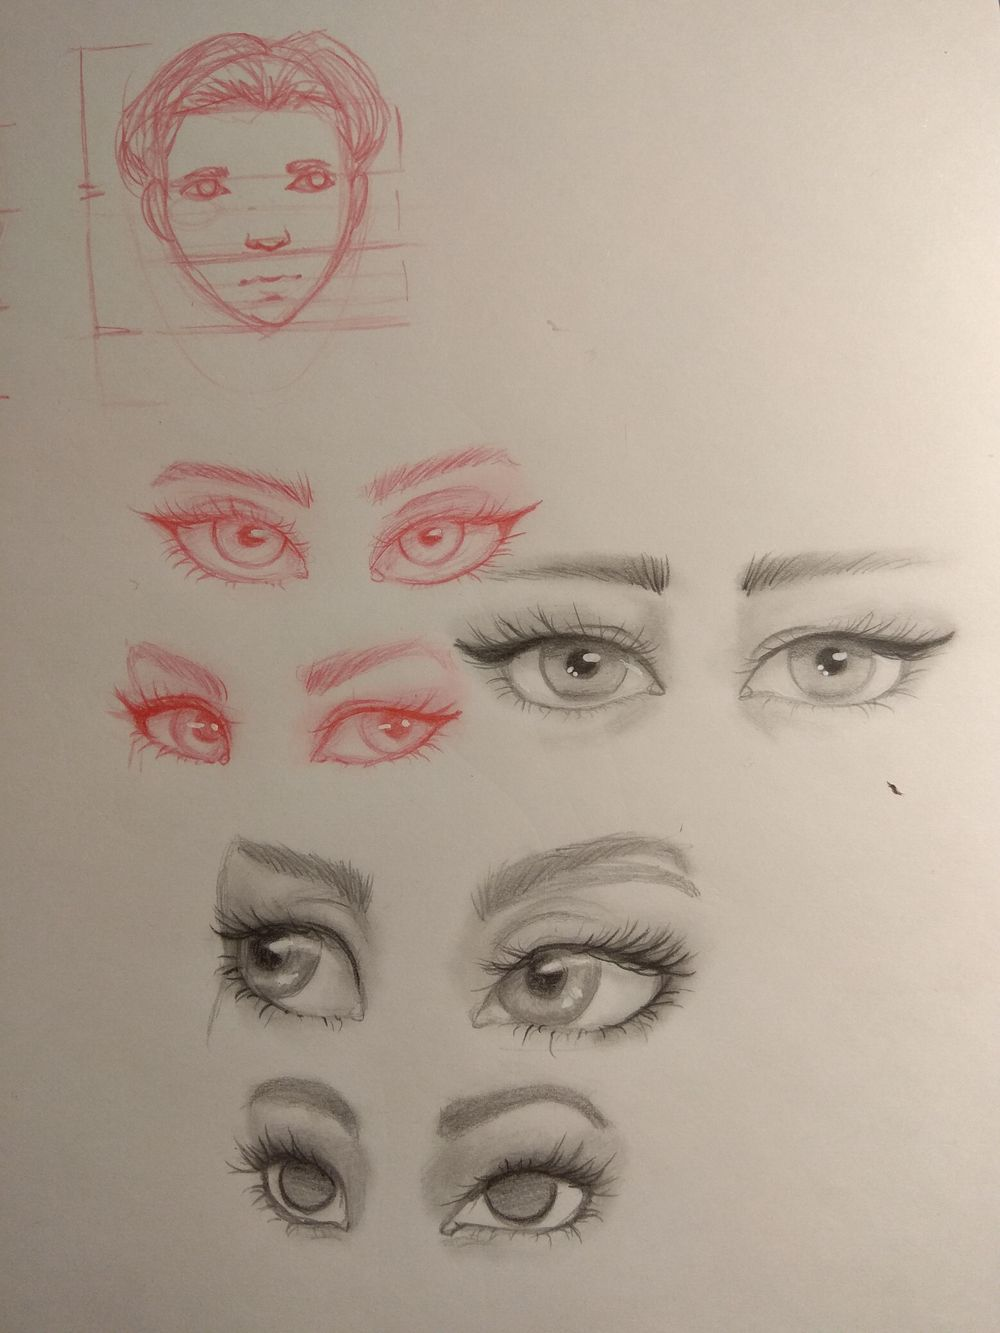 Sketching female characters - image 1 - student project